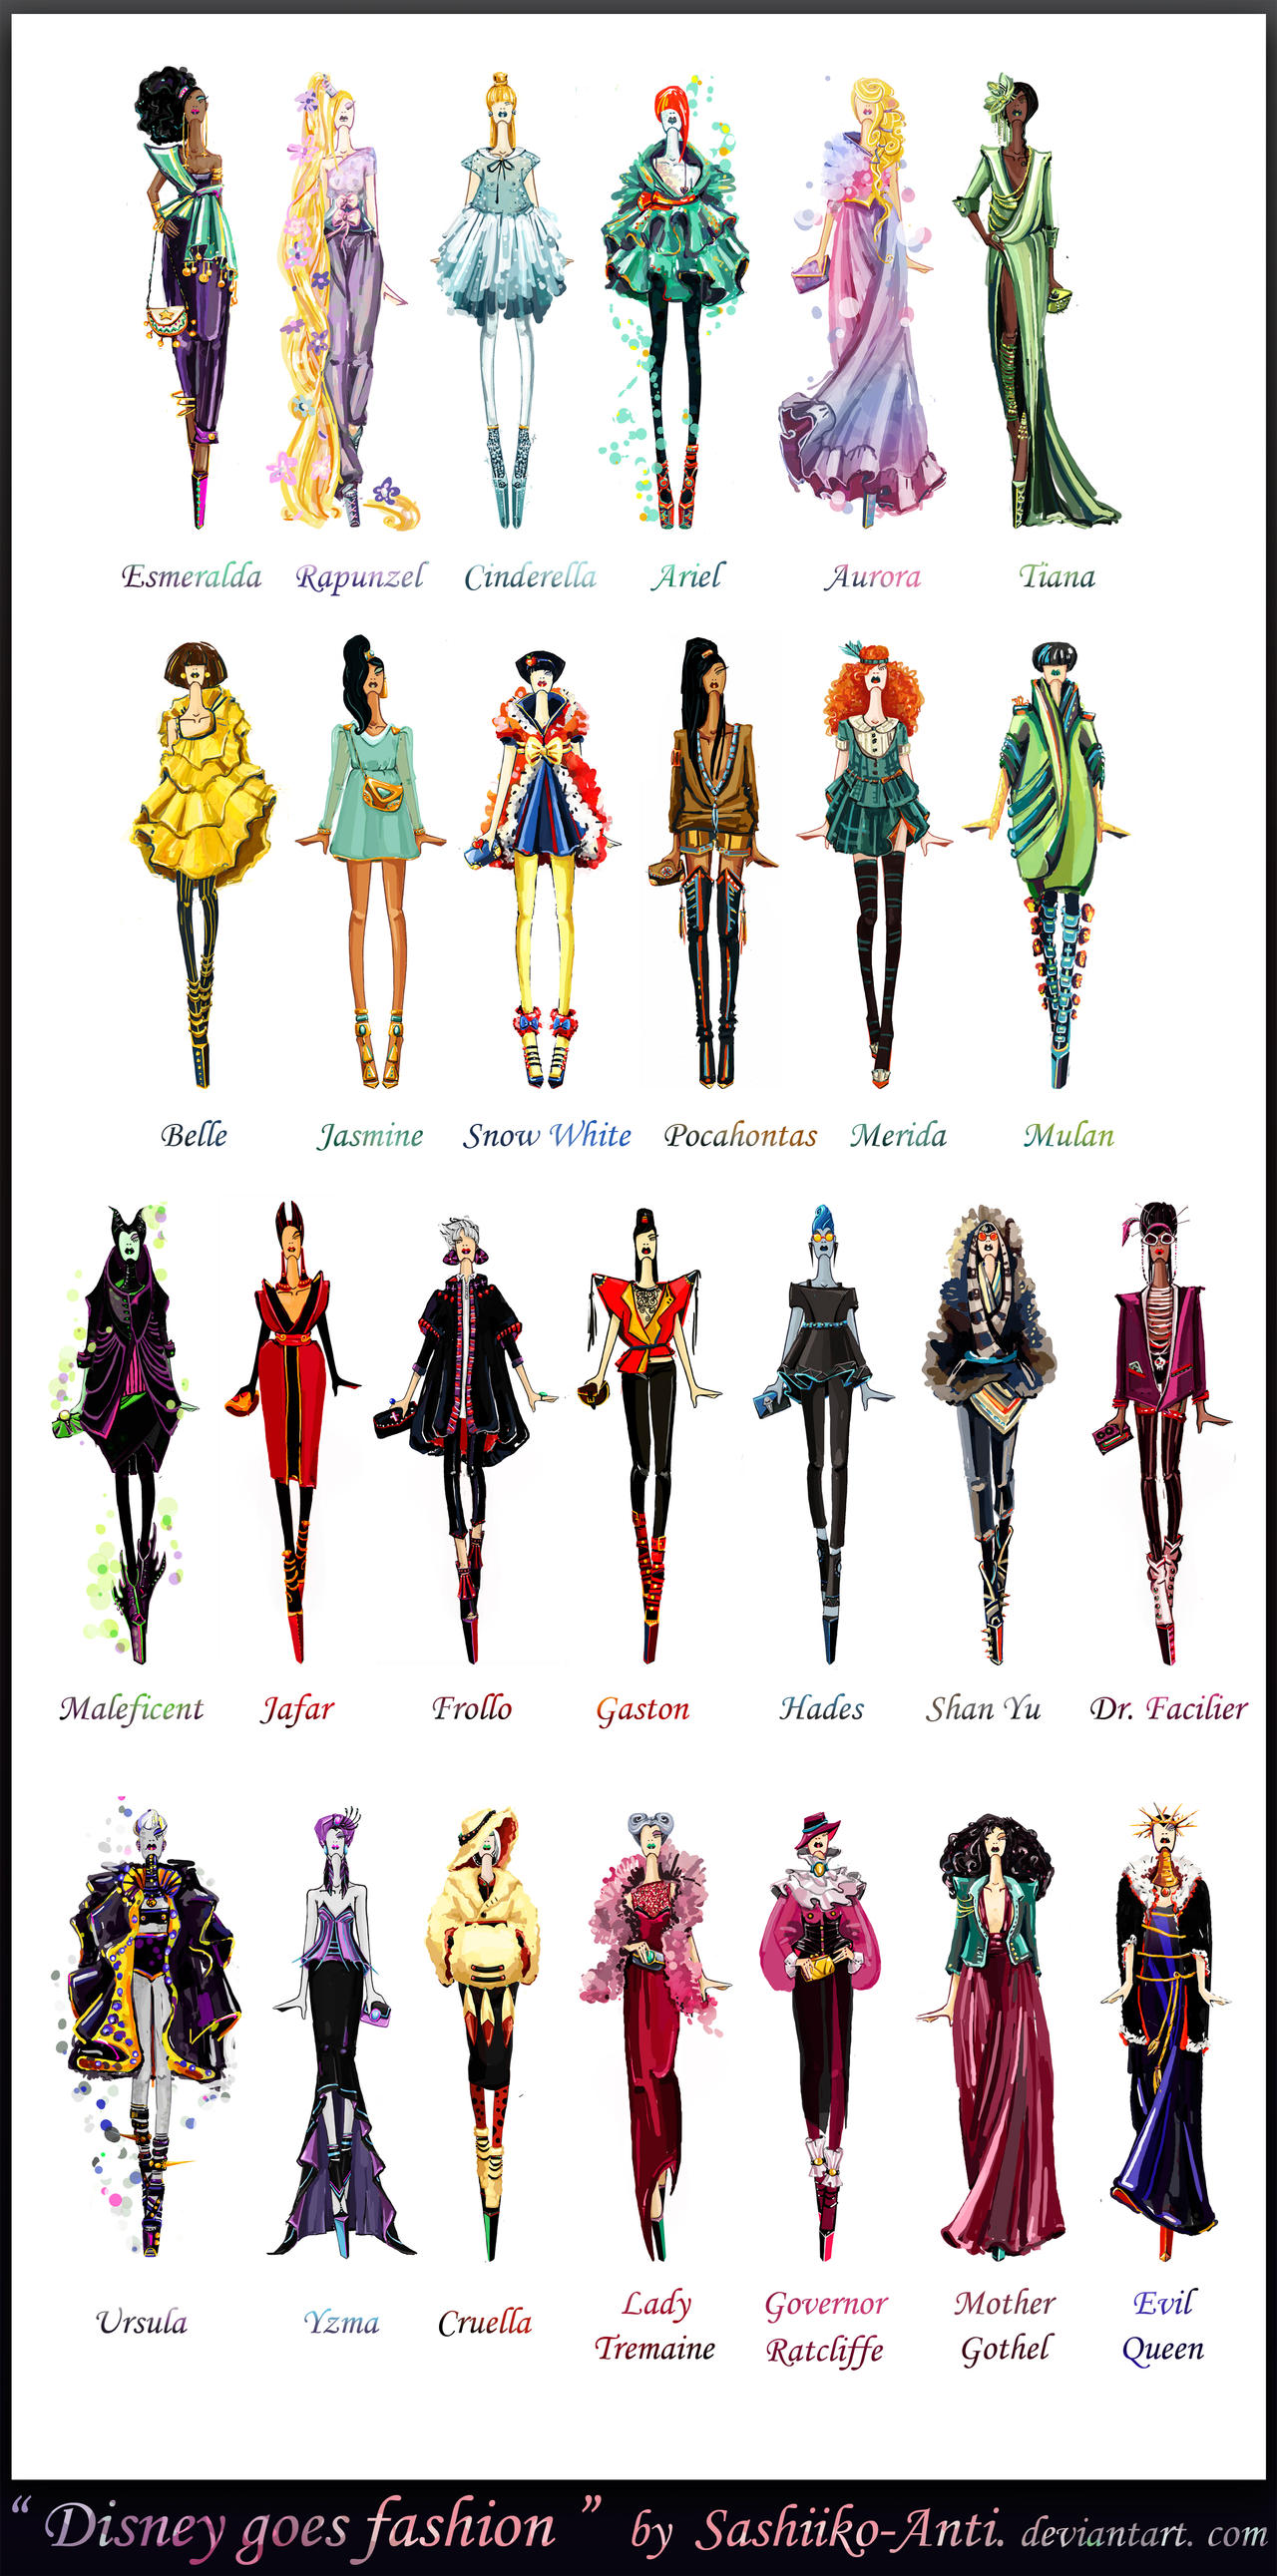 Disney goes fashion.Final by Sashiiko-Anti